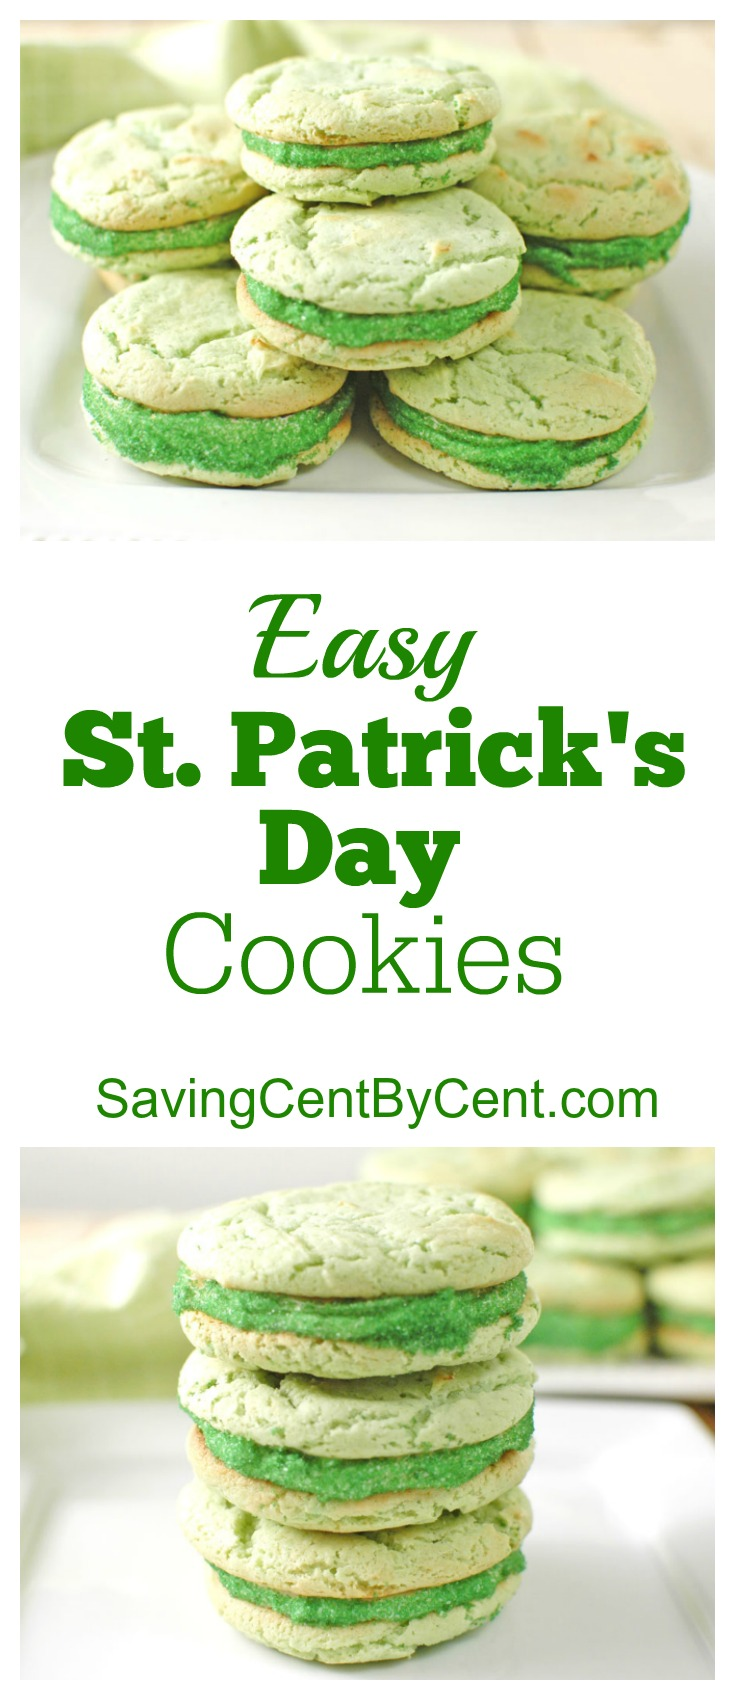 Easy St Patrick's Day Cookies